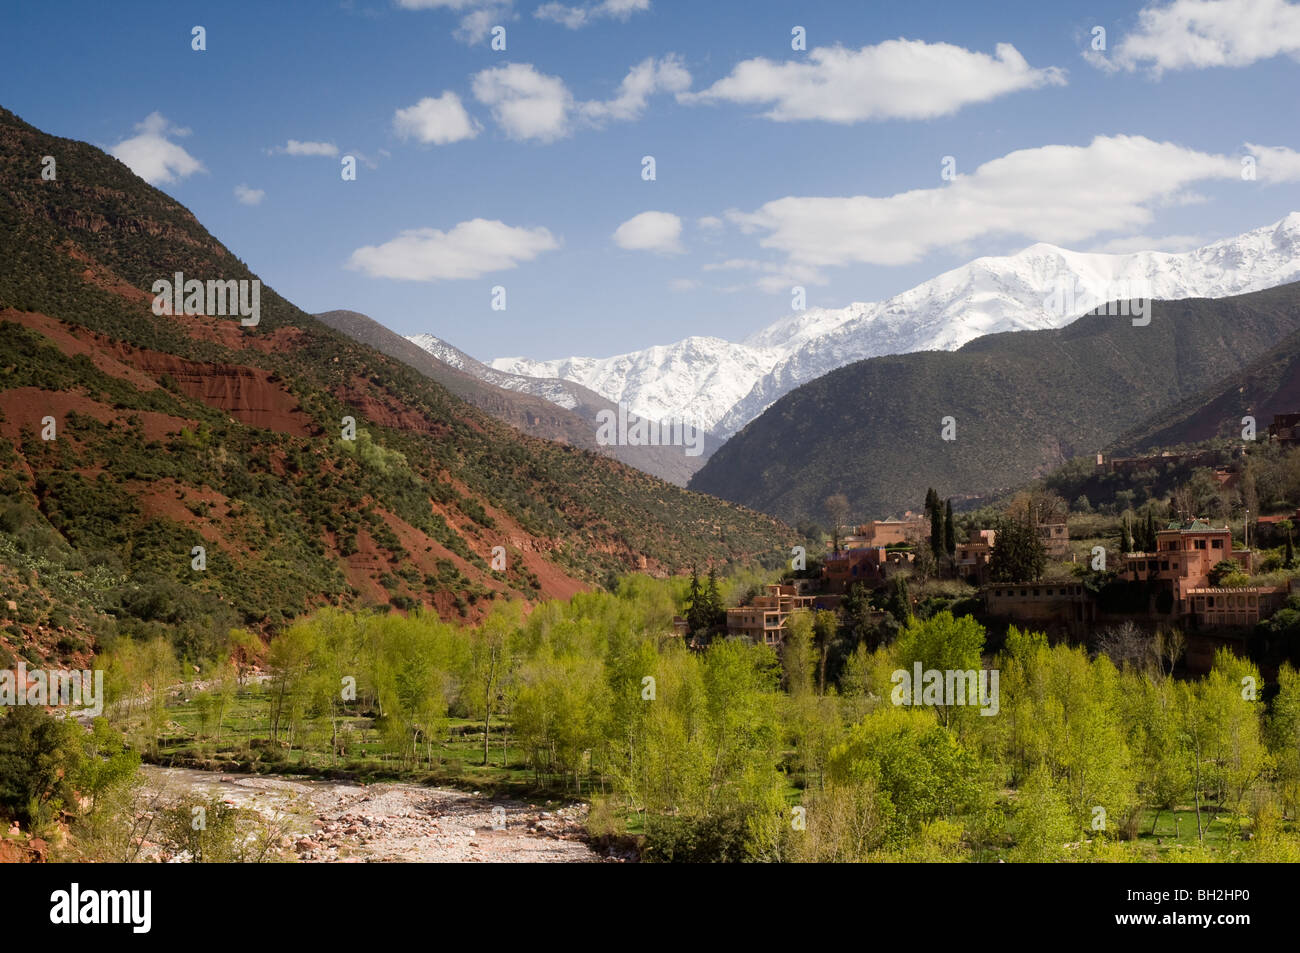 Looking down the Ourika Valley to the snow covered Atlas Mountains - Stock Image